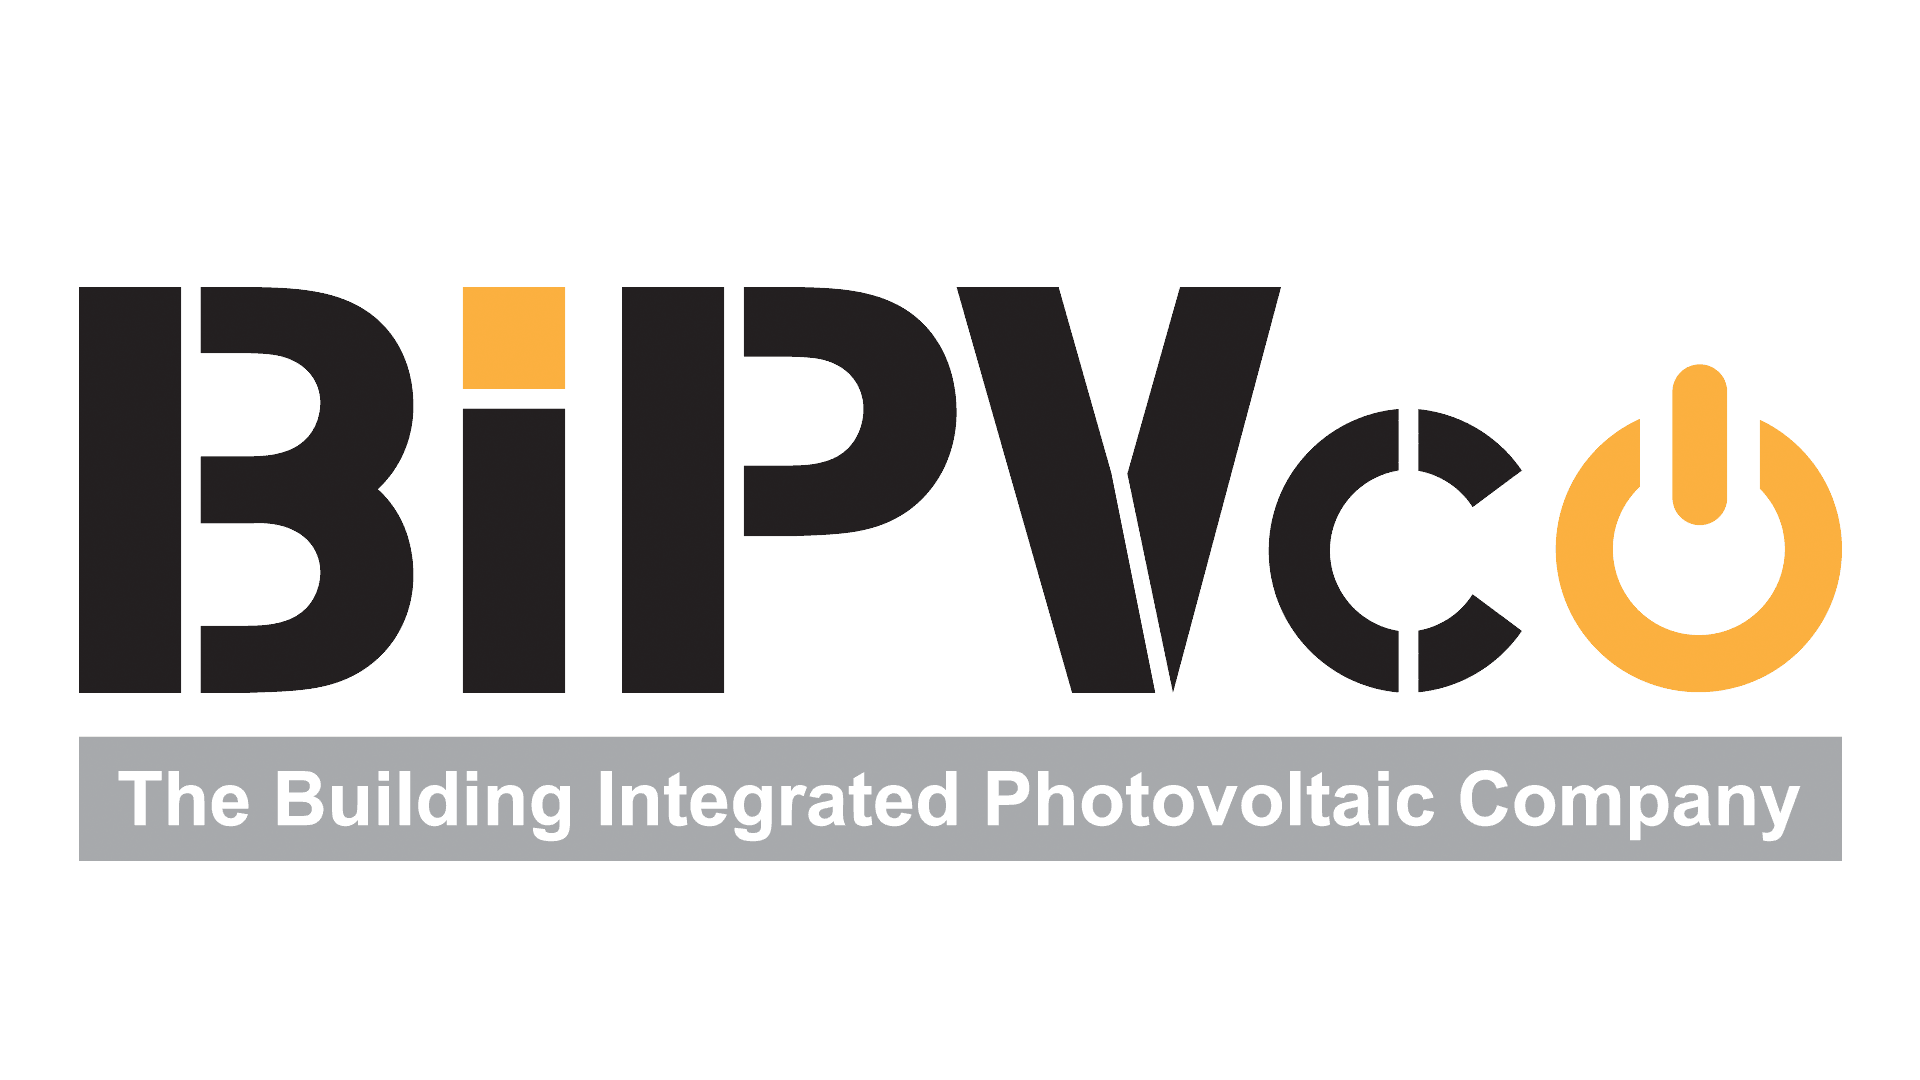 BiPVco -The Building Integrated Photovoltaic Company Logo